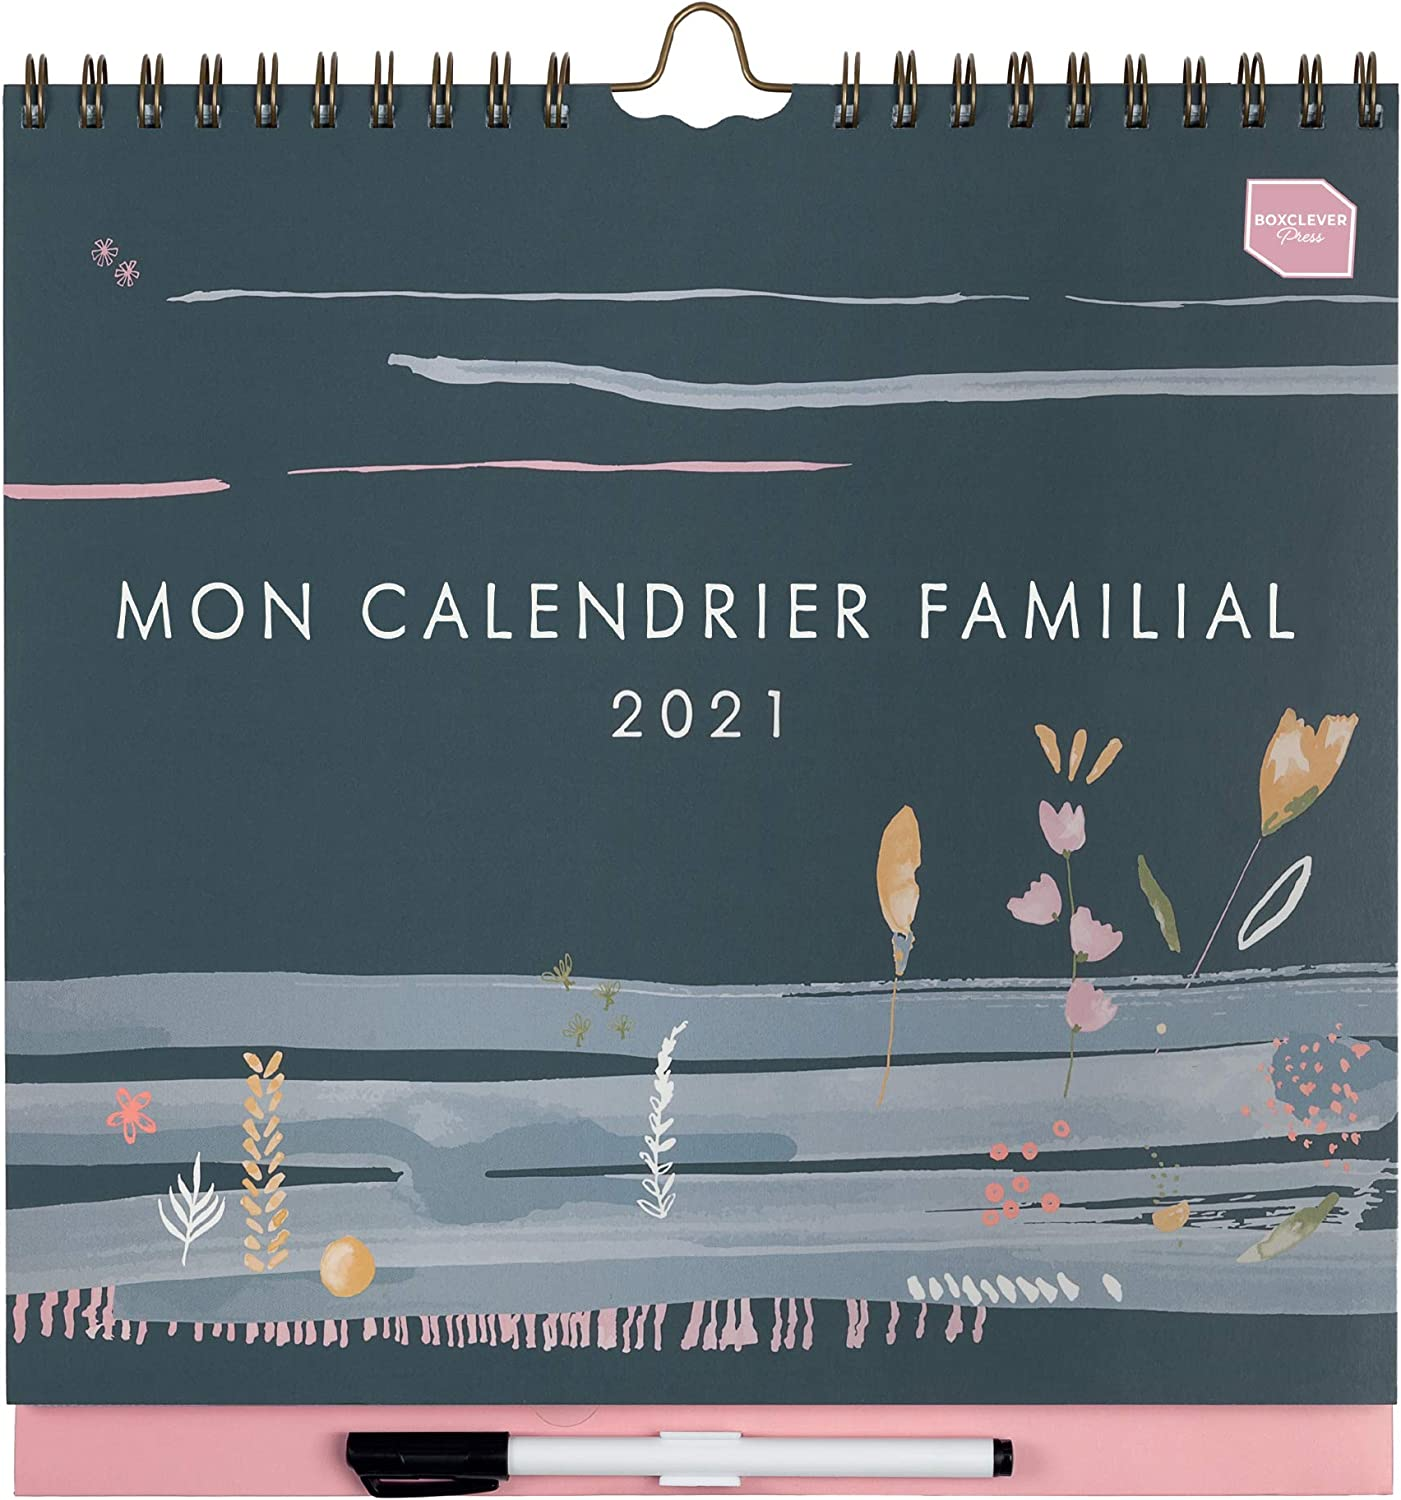 Calendrier Familial 2021 in French) Boxclever Press 'Mon Calendrier Familial' 2021. Family